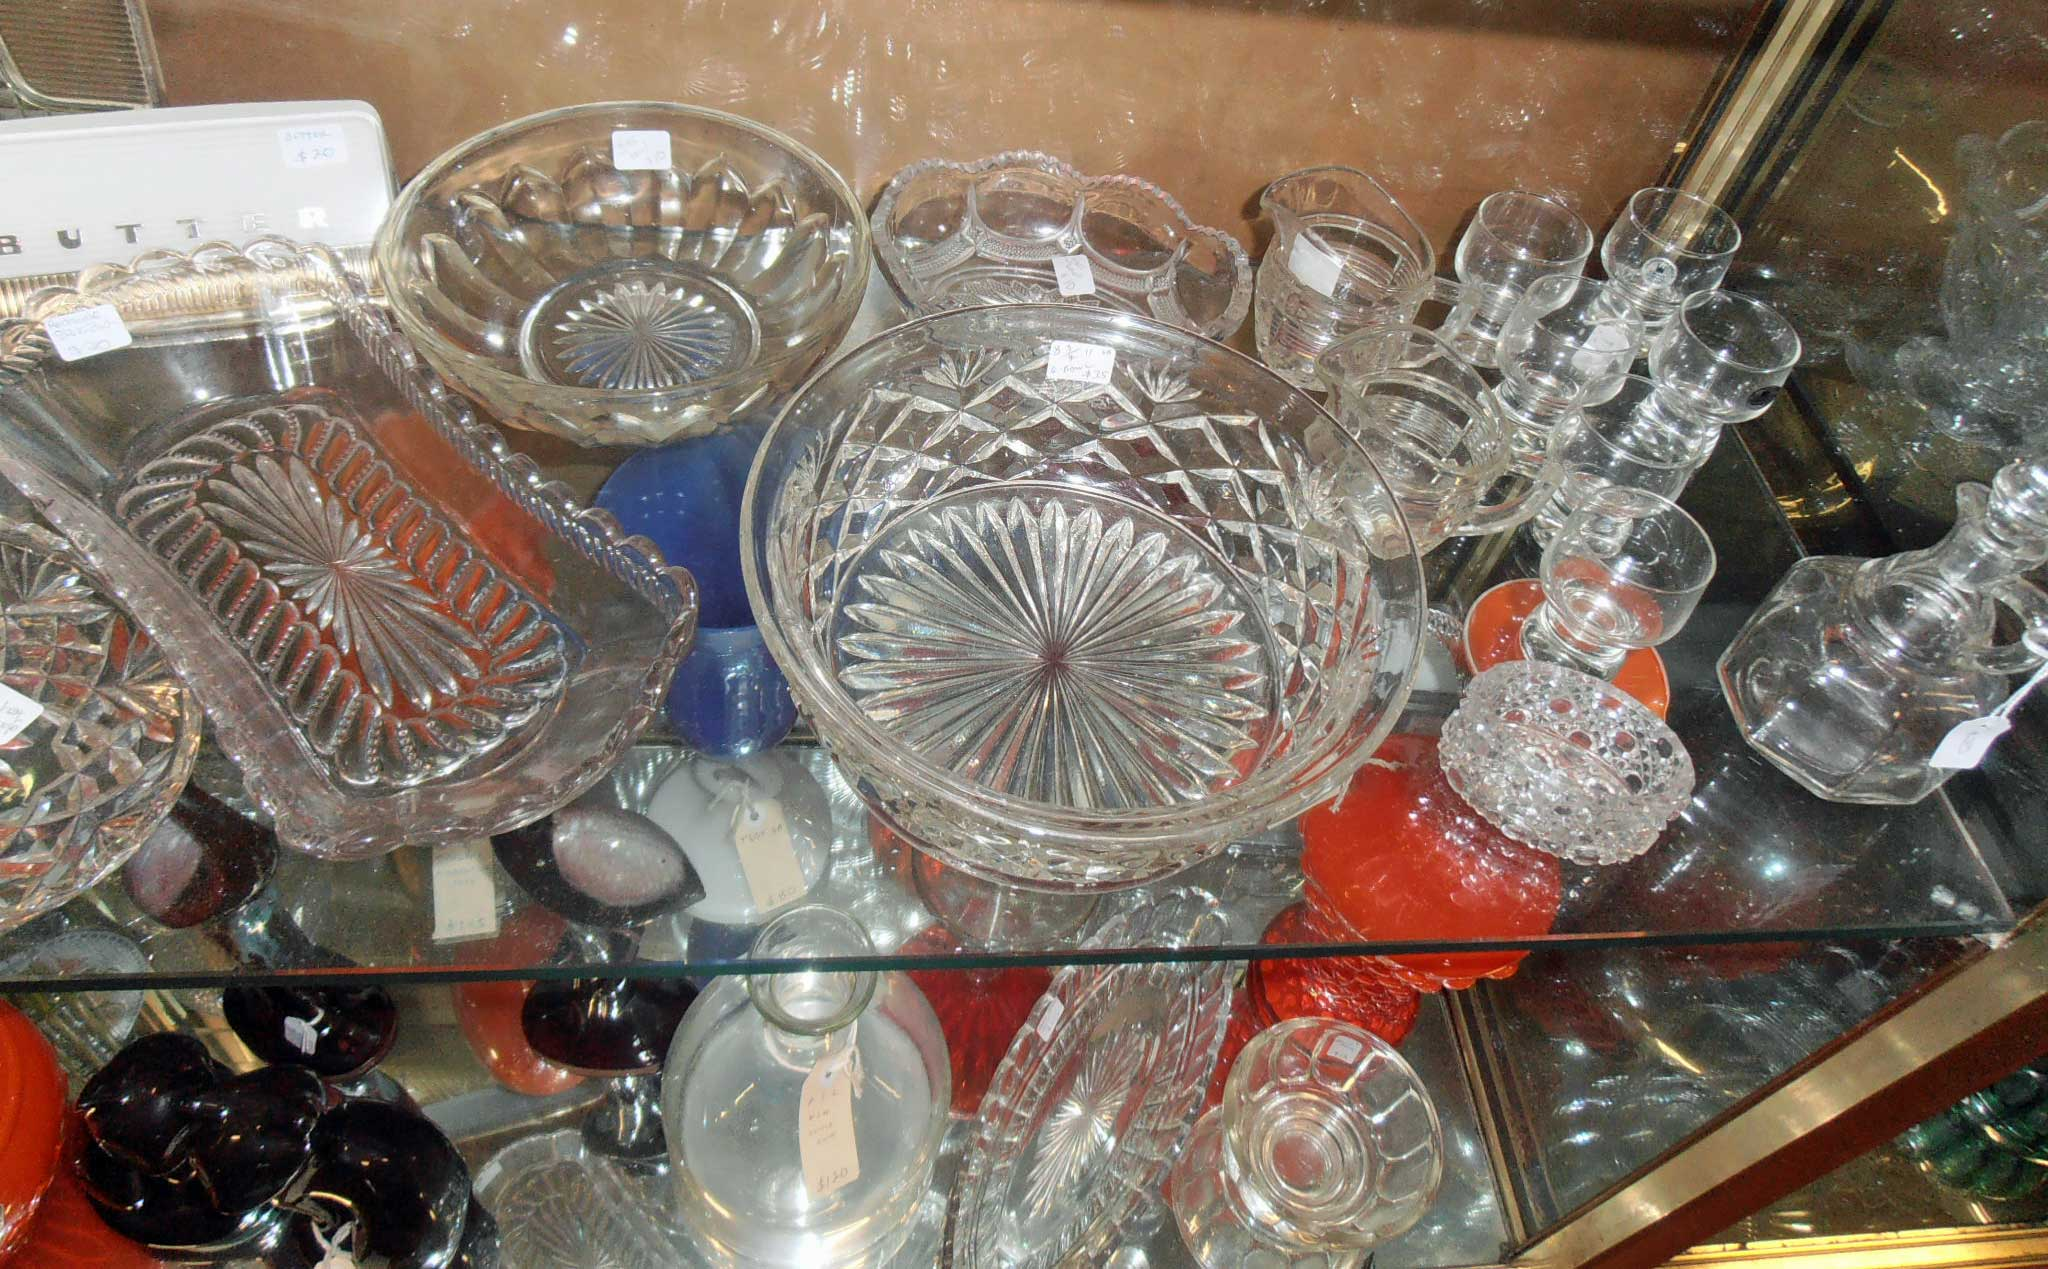 antique and vintage glass ware and crates For sale at Heaths Old Wares, Antiques, Collectables and industrial antiques 12 station St bangalow NSW phone 0266872222 open 7 days